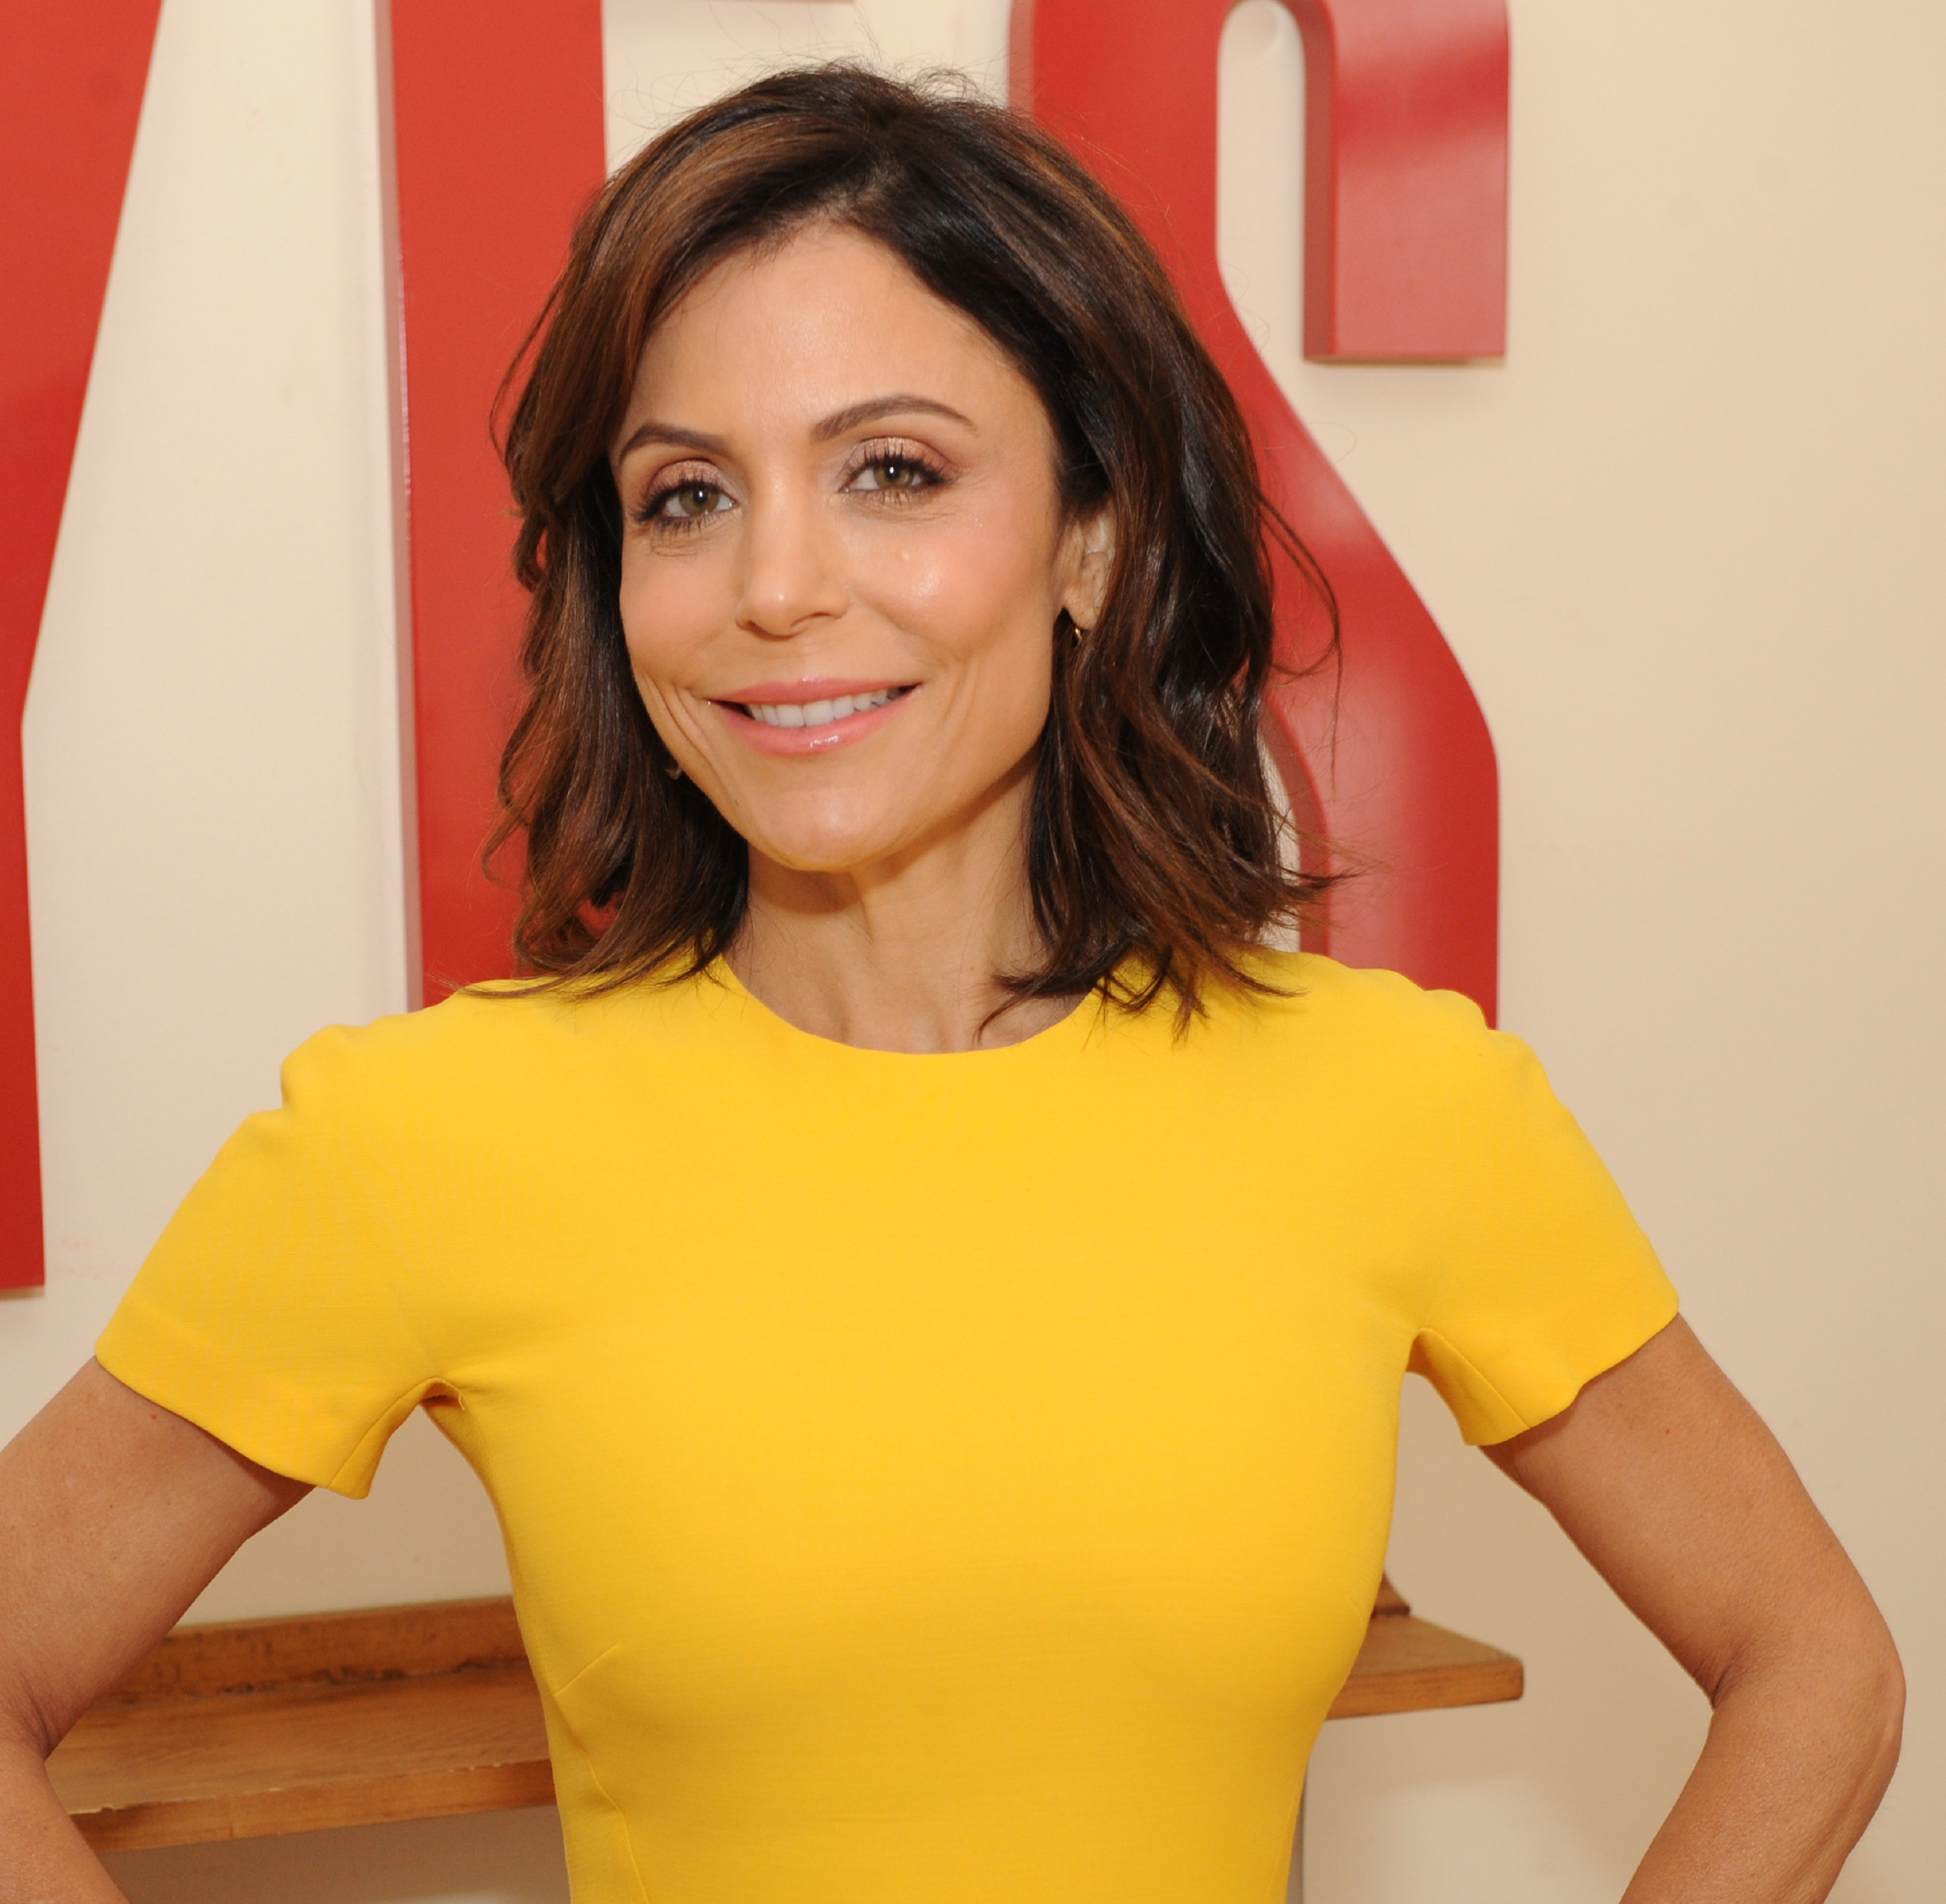 4b4fdc59c8 2018 Business Women s Forum (BWF) To Feature Keynote BY TV Personality  Bethenny Frankel